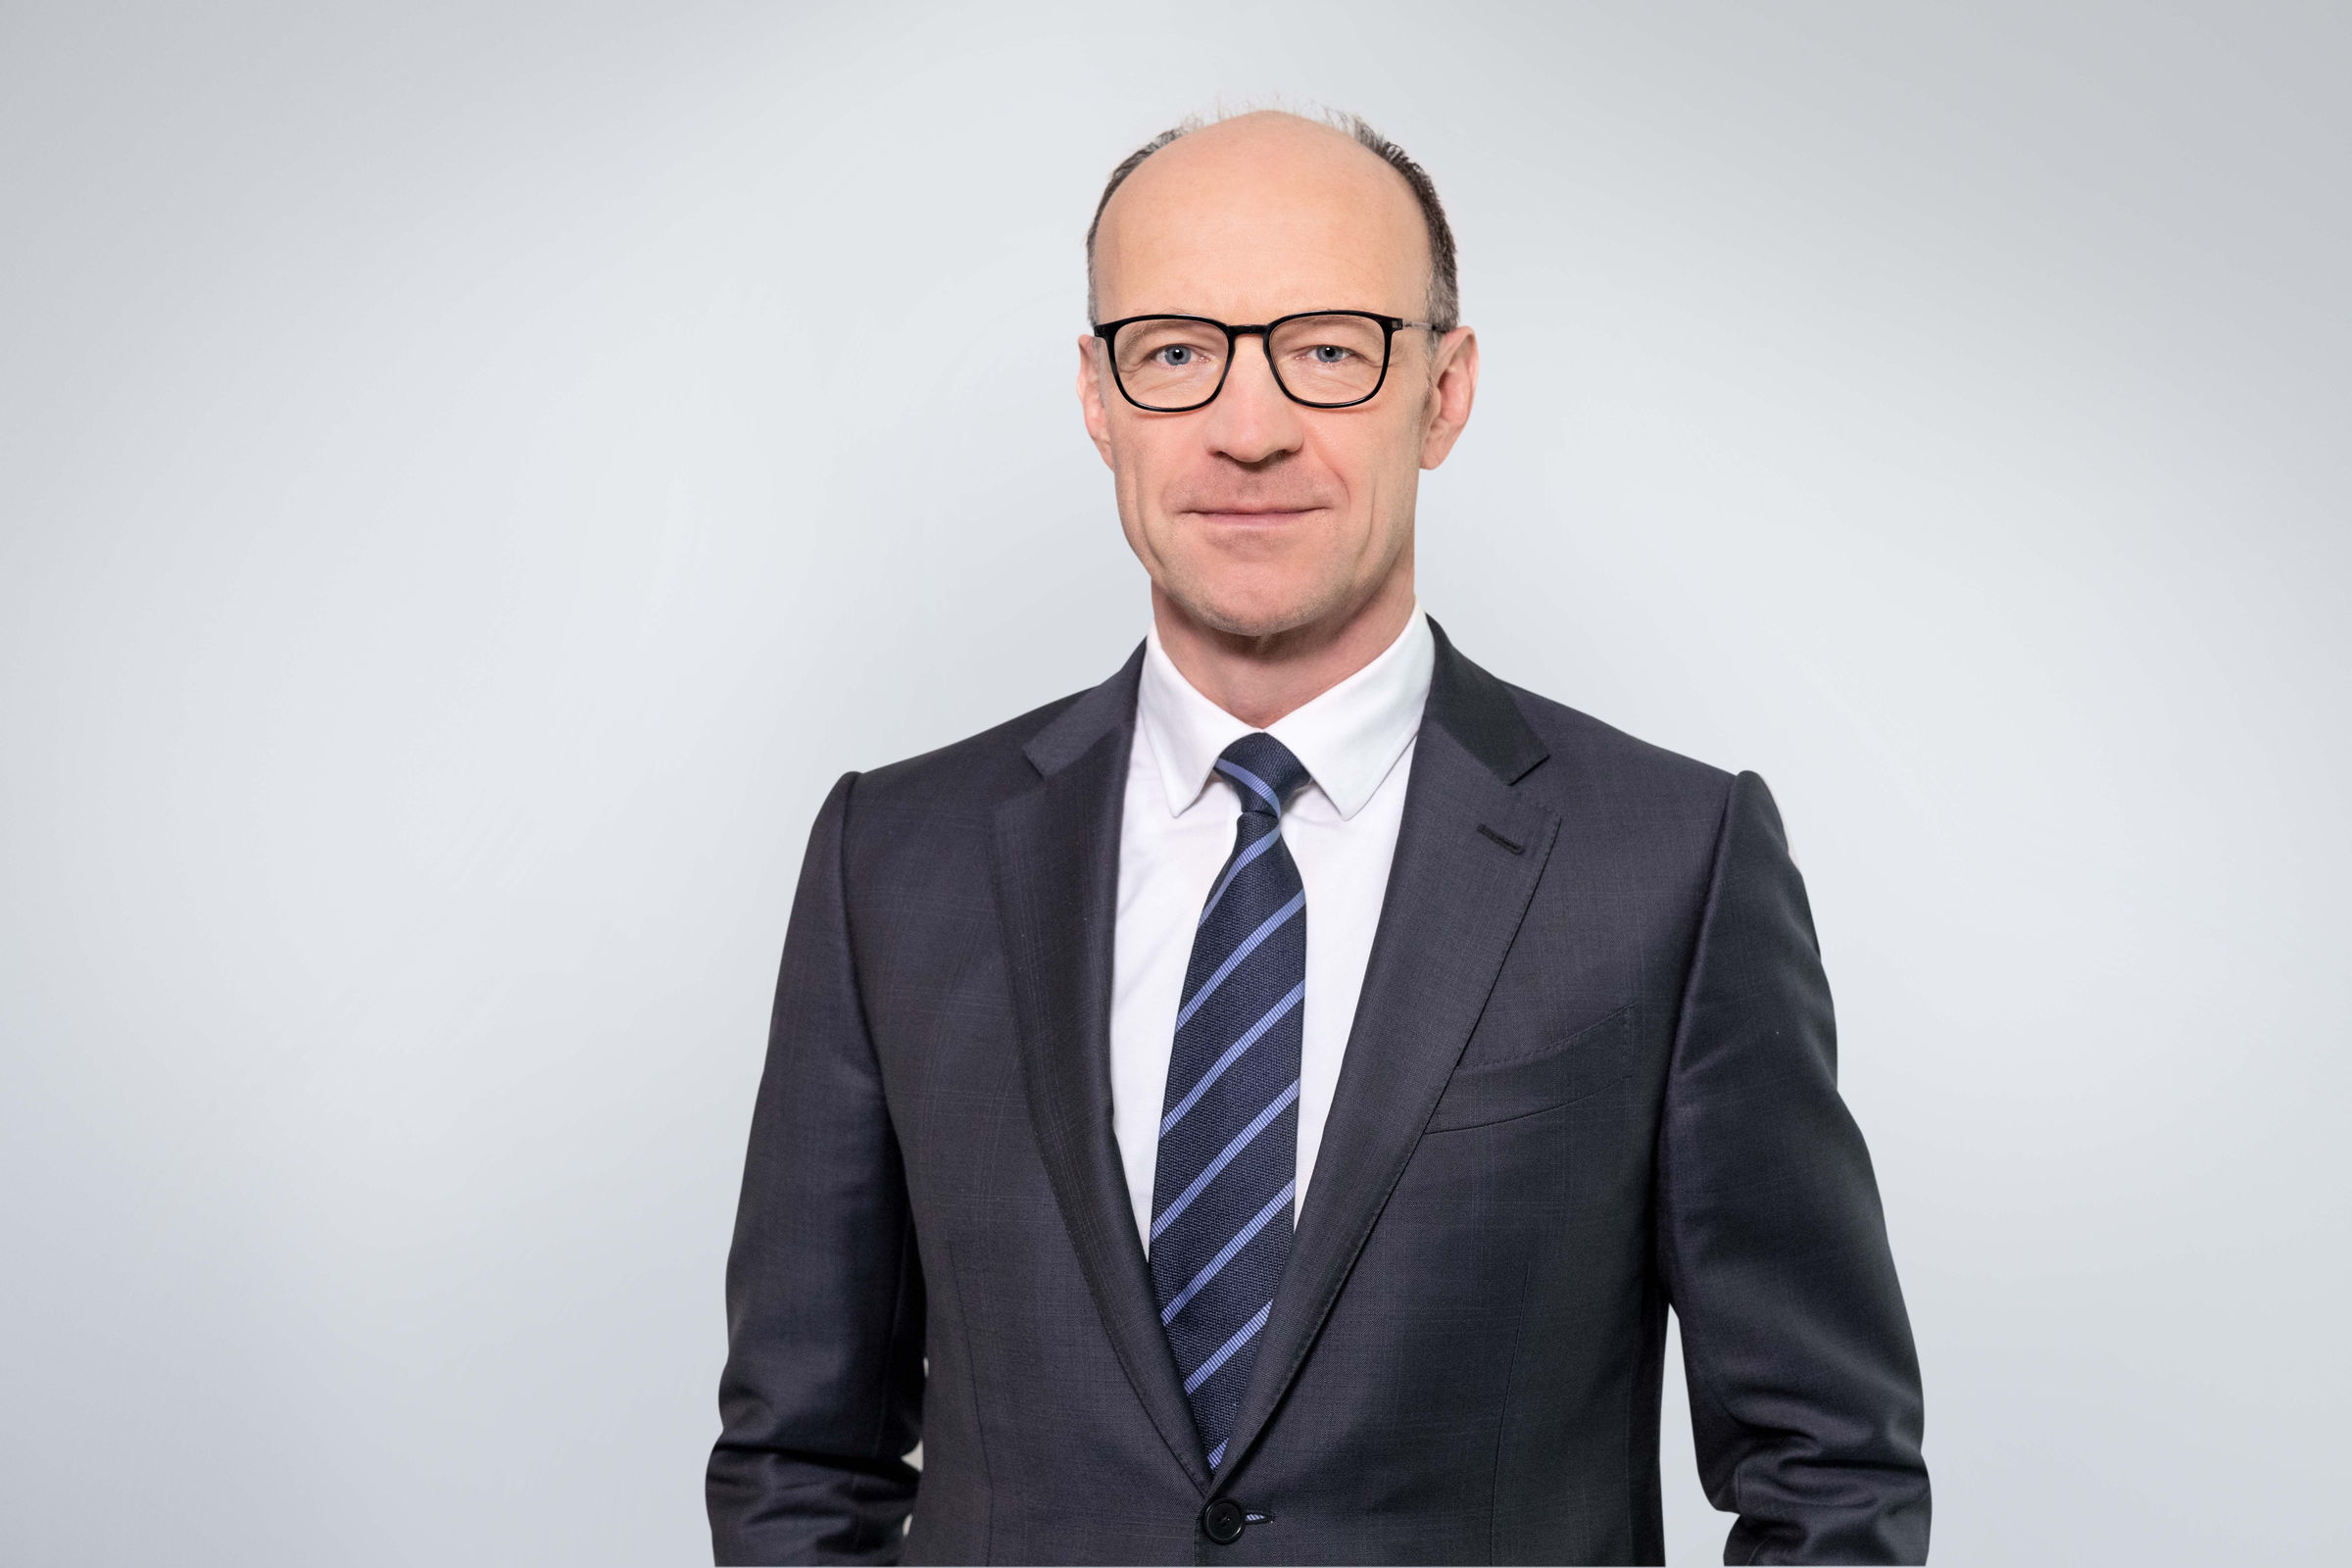 Dr. Arno Antlitz, designated Member of the Board of Management Finance, China and Legal Affairs as of March 1, 2020